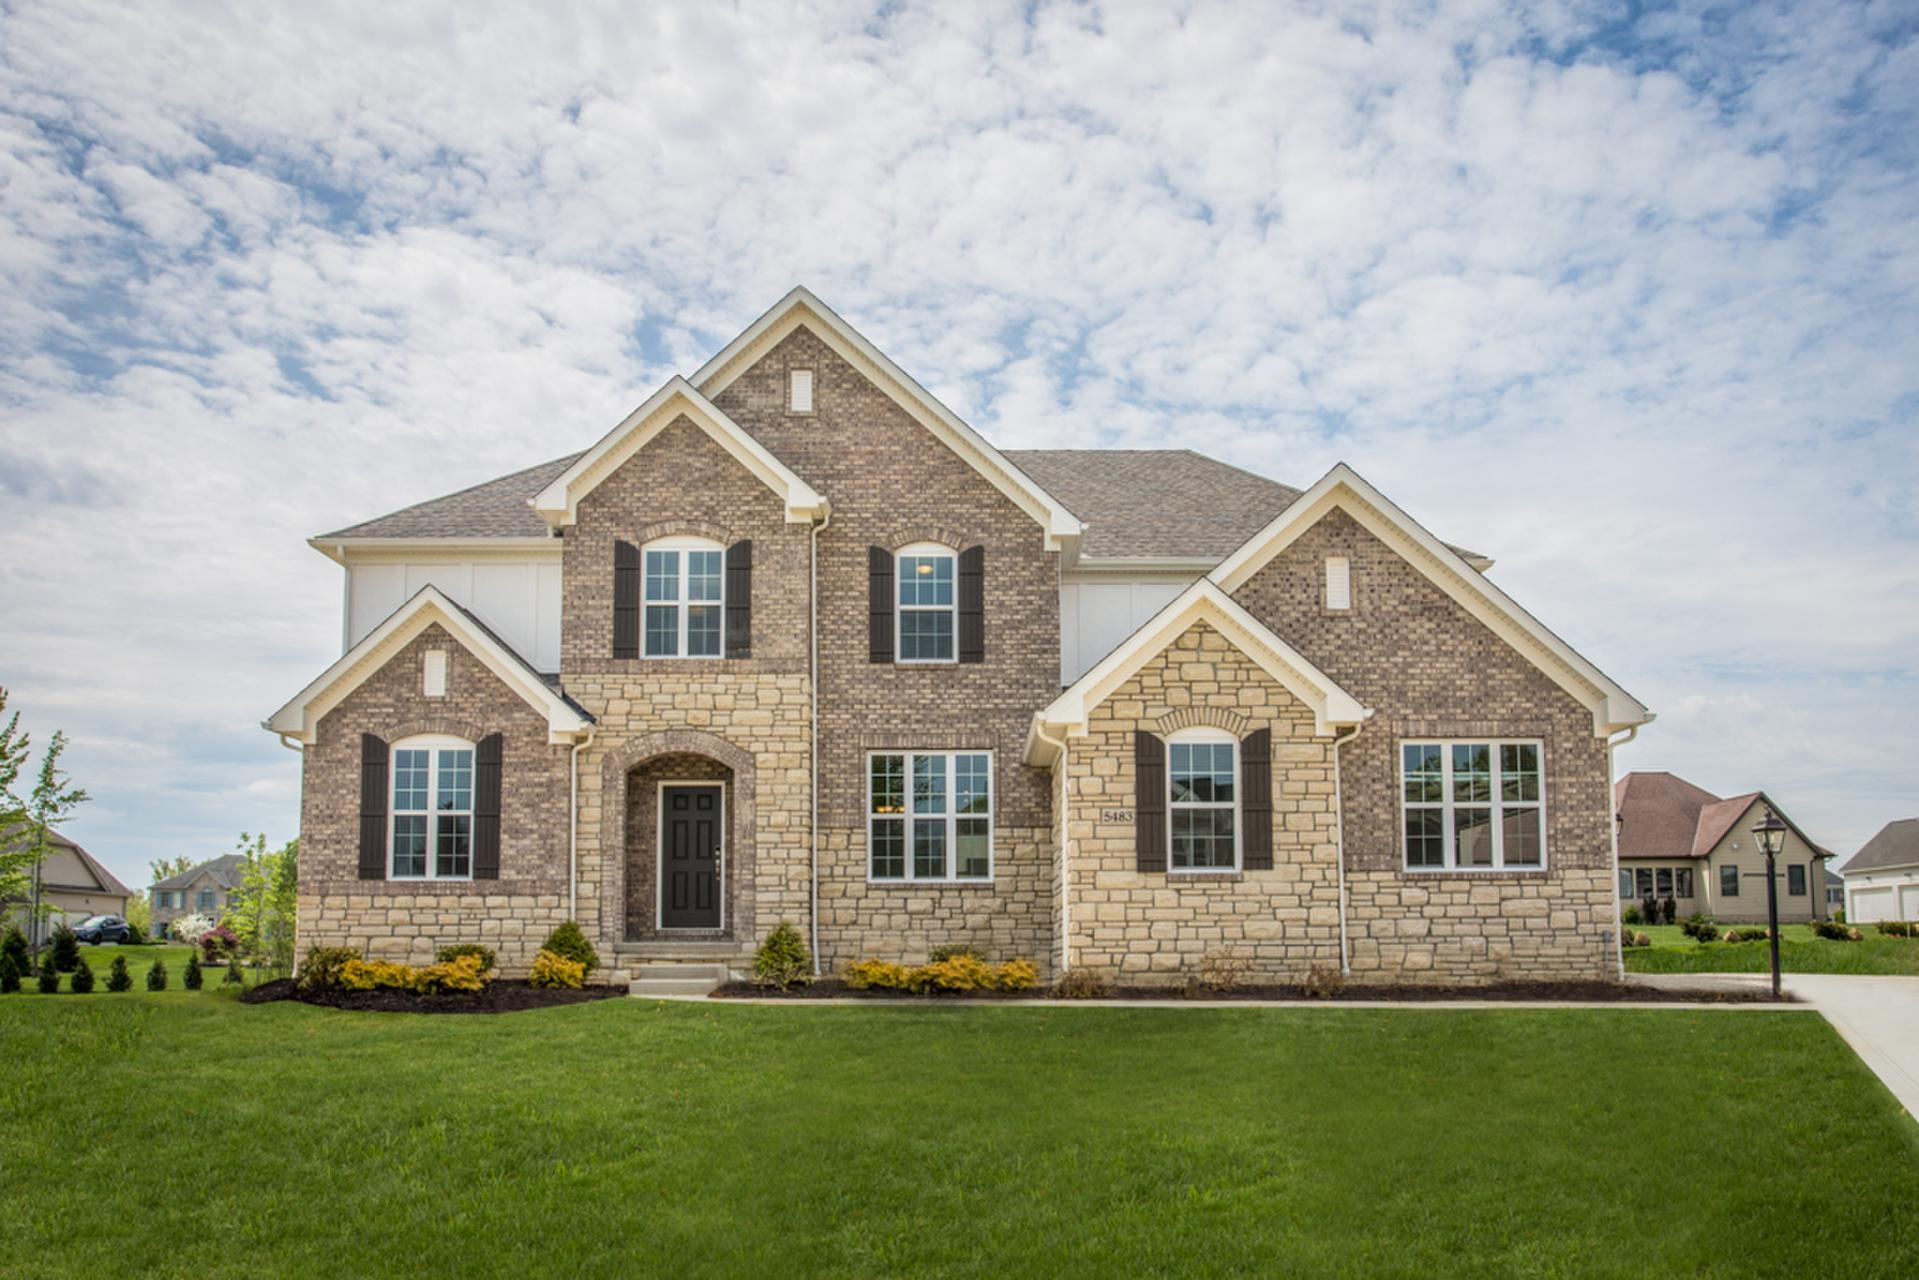 New Homes Search Home Builders And New Homes For Sale Drees